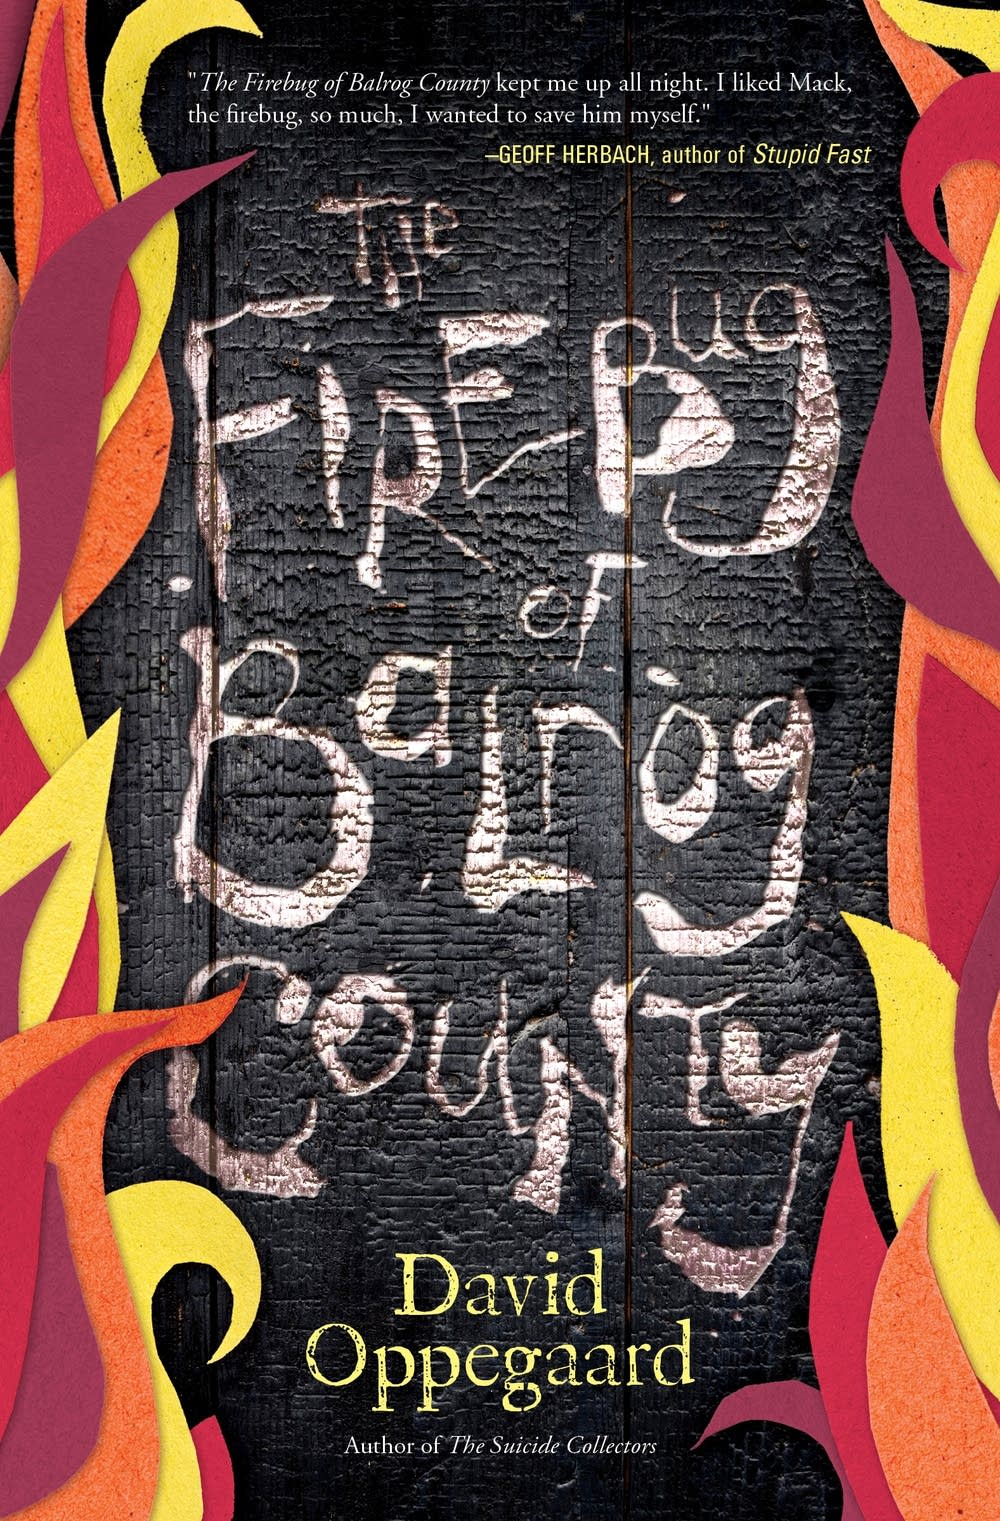 'The Firebug of Balrog County,' by David Oppegaard